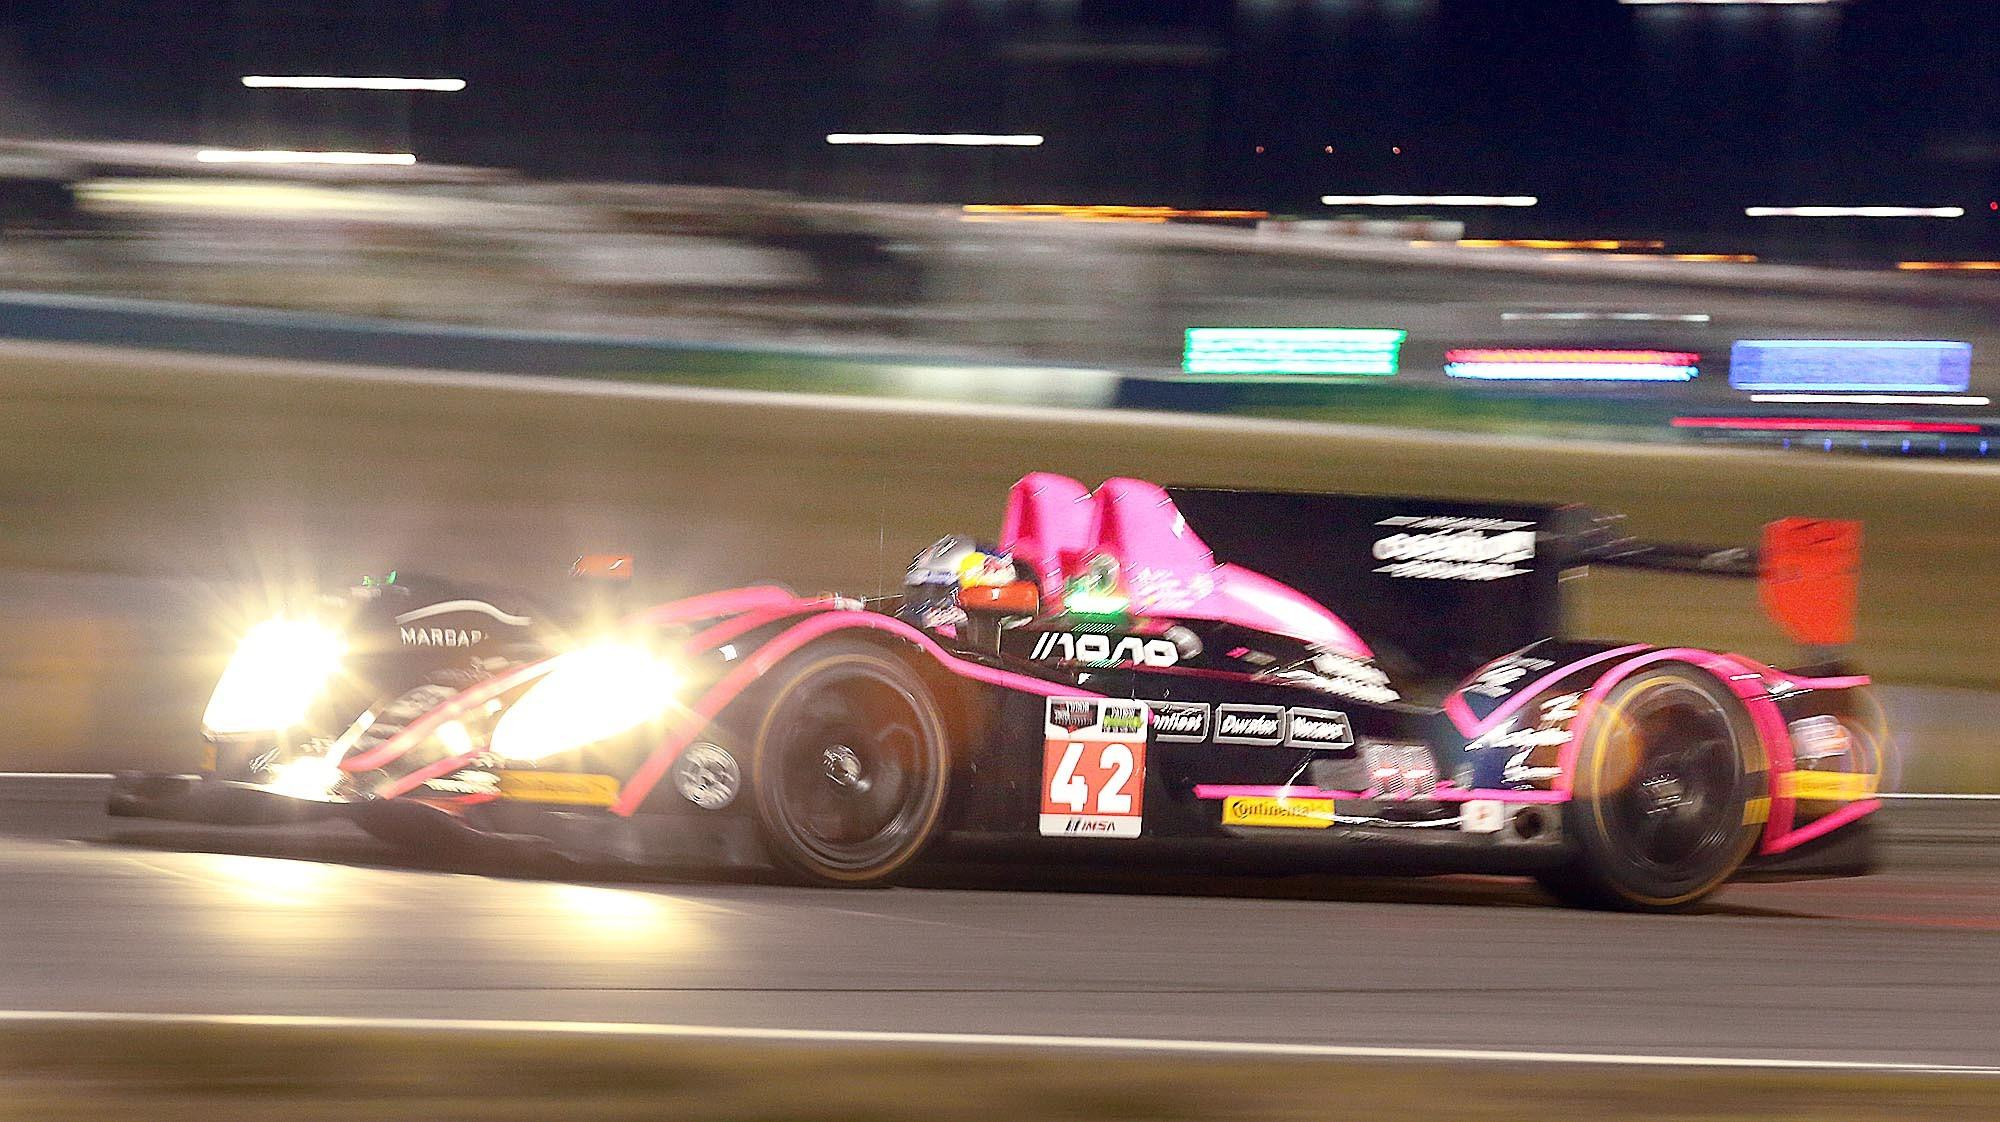 The OAK Racing Morgan race car drives under the lights during practice for the Rolex 24 at Daytona International Speedway on Thursday night, January 23, 2014. (Stephen M. Dowell/Orlando Sentinel)